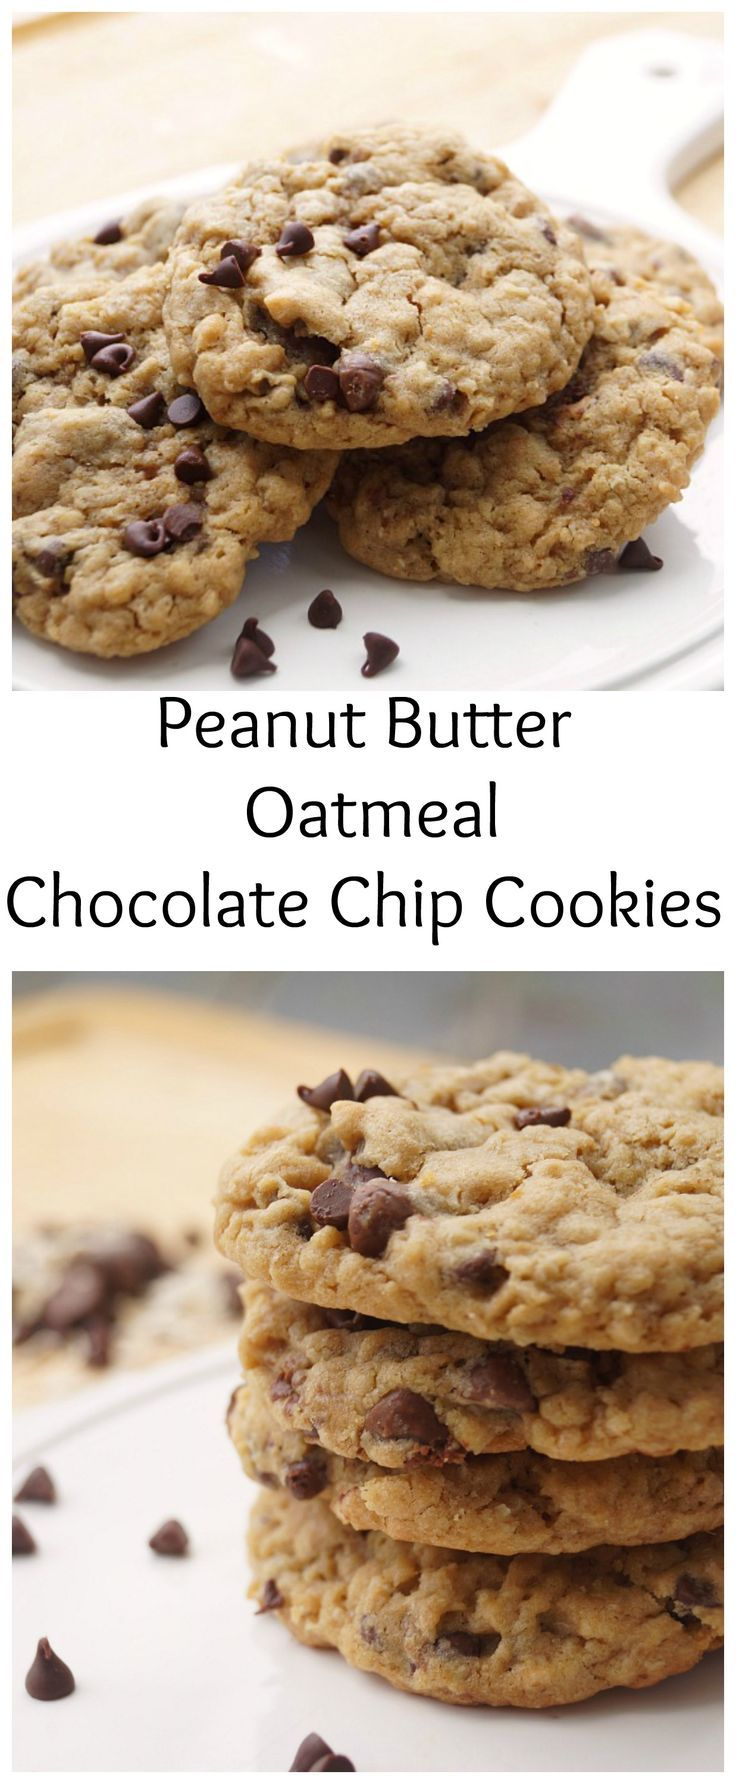 ... Cookies! on Pinterest | Cinnamon apples, Mini donuts and Peanut butter